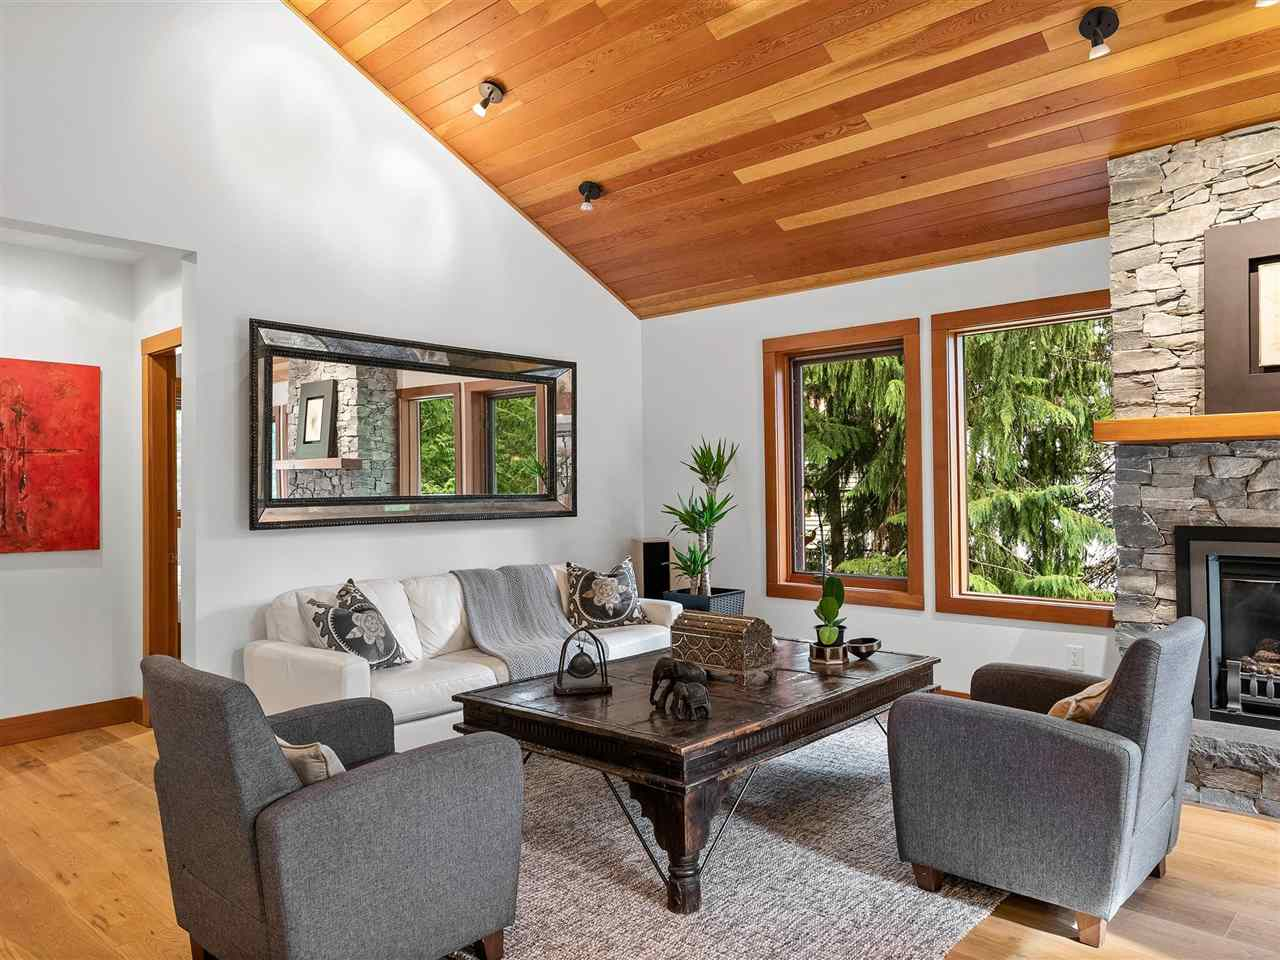 8745 IDYLWOOD PLACE - Alpine Meadows House/Single Family for sale, 7 Bedrooms (R2578936) - #3